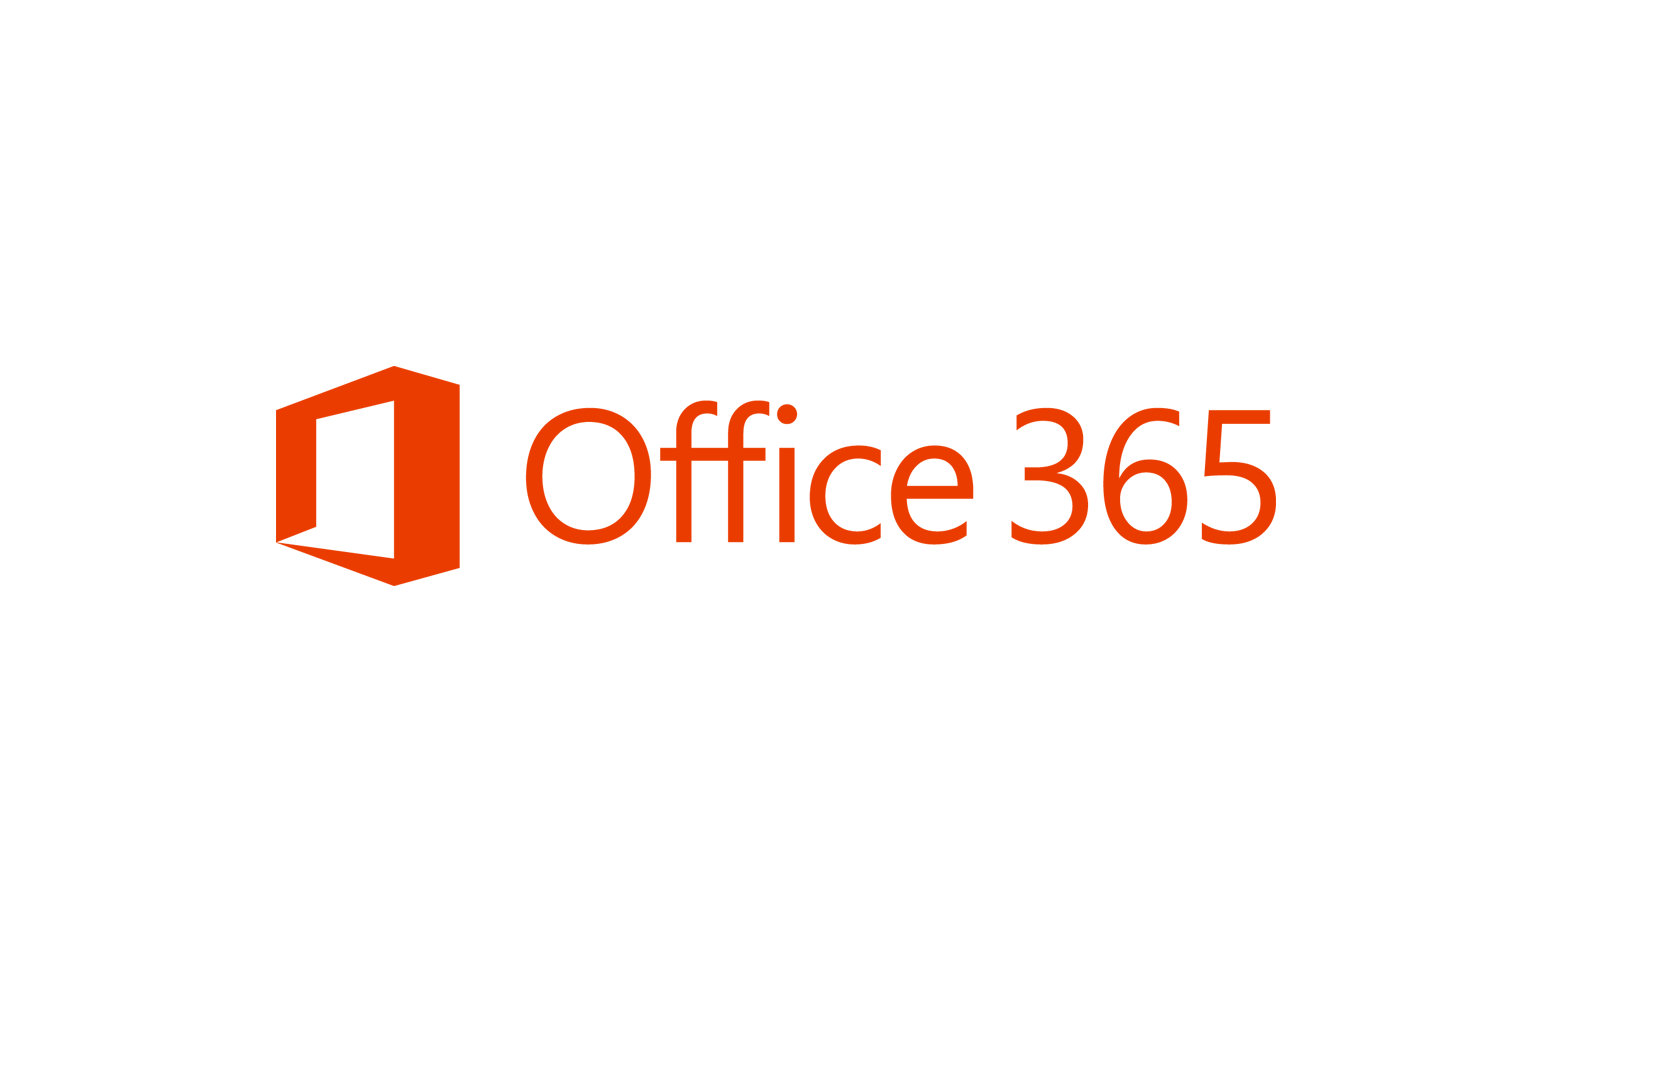 Png Office 365 Free Icon image #12621